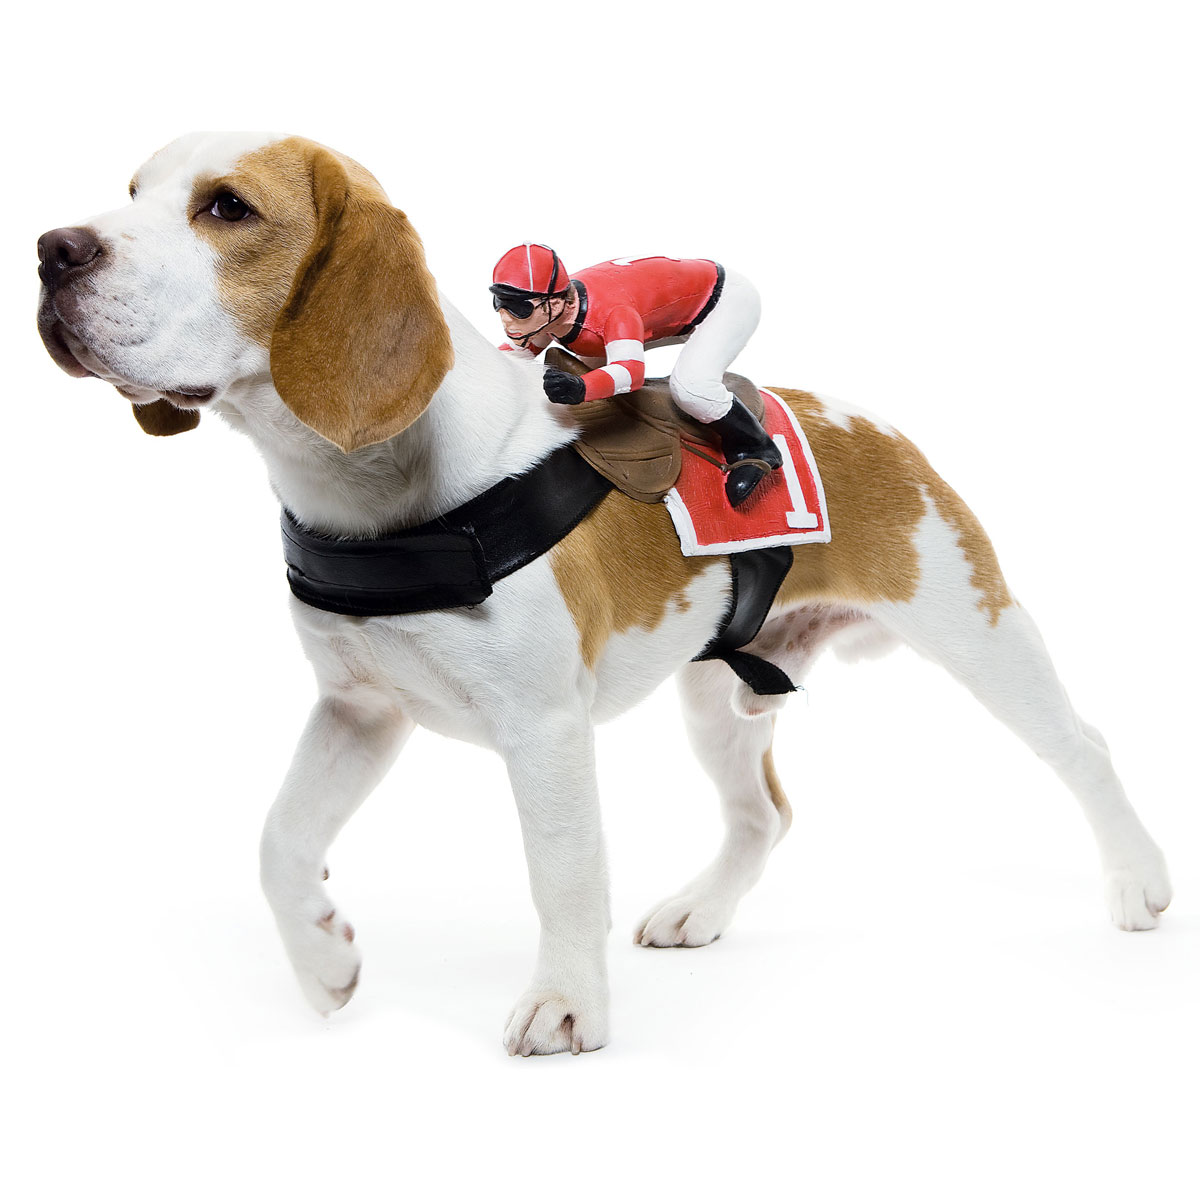 Dog Horse Racing Halloween Costume